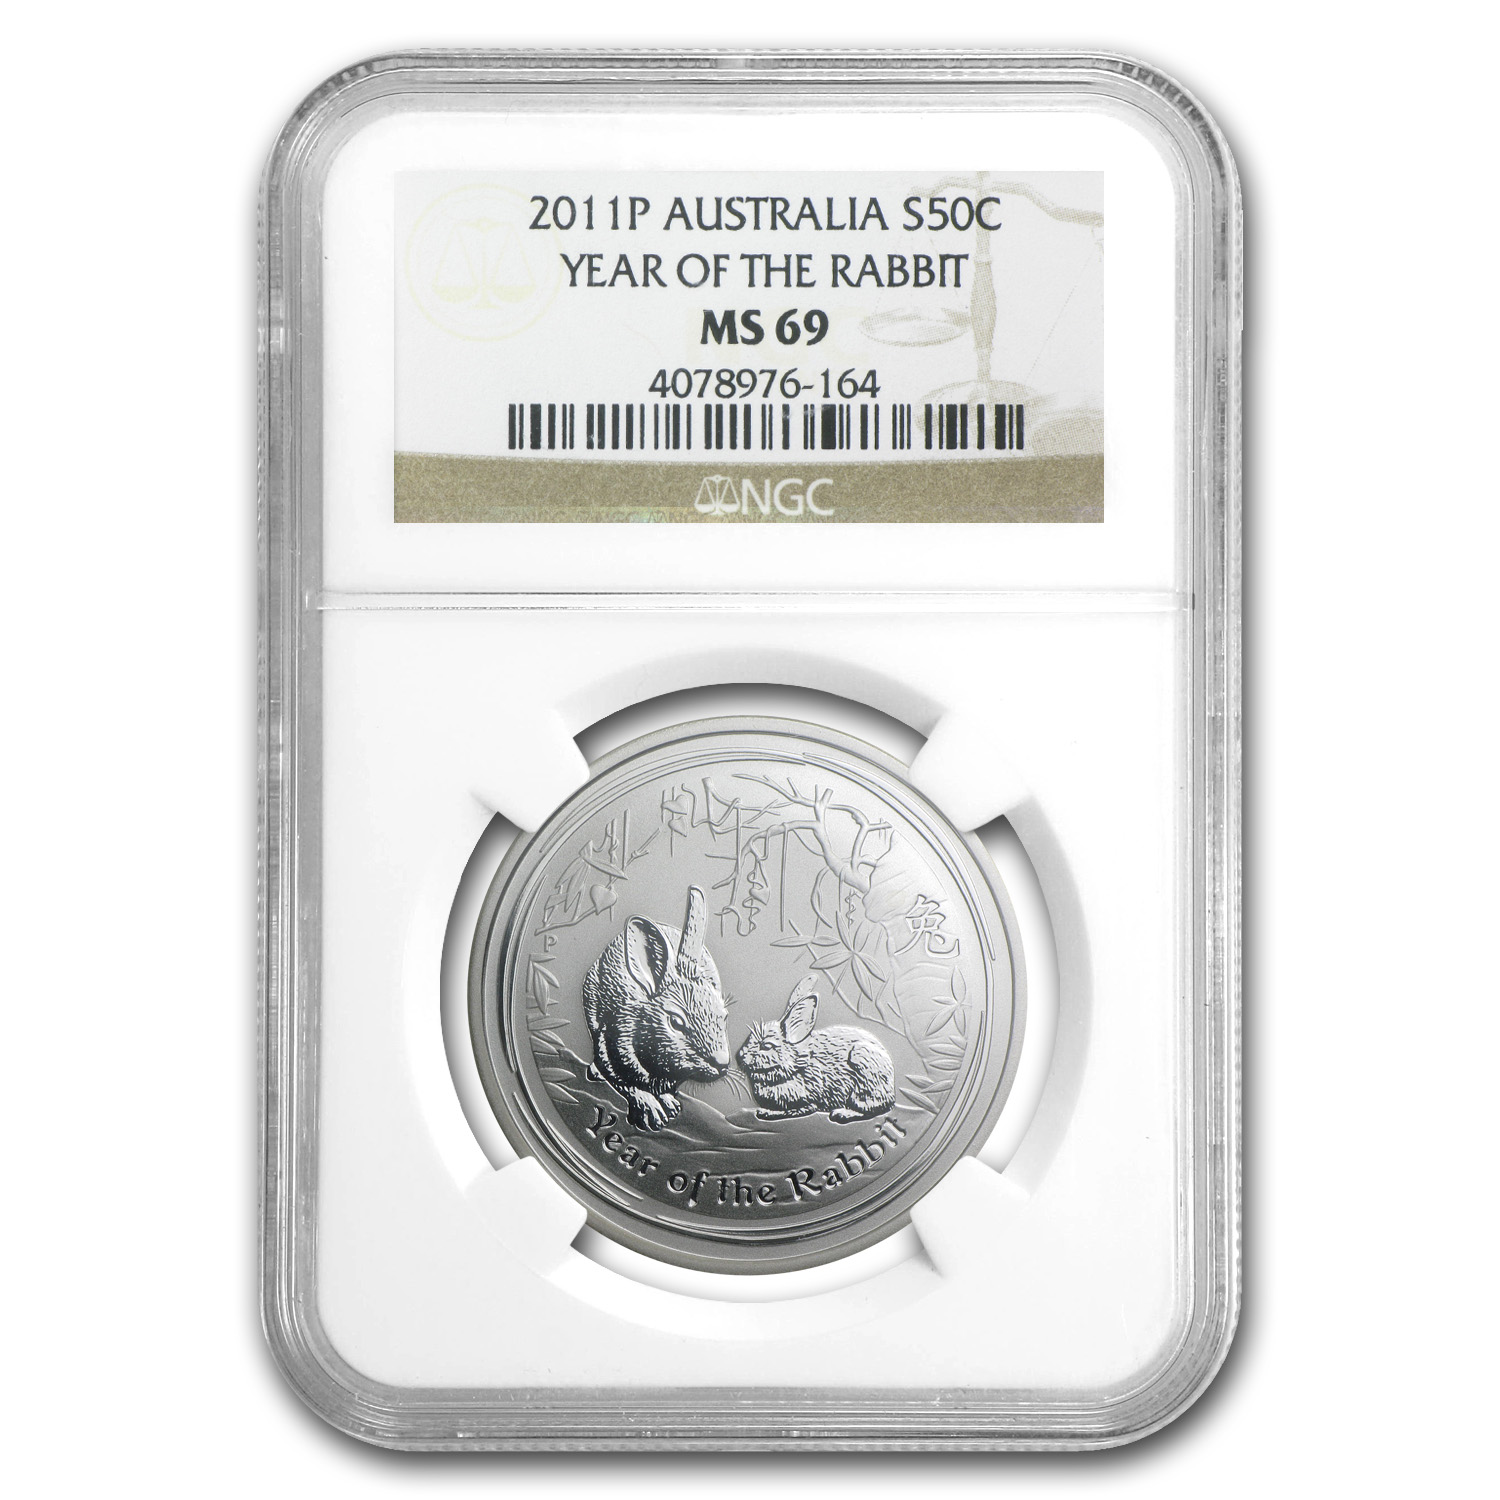 2011 Australia 1/2 oz Silver Year of the Rabbit MS-69 NGC